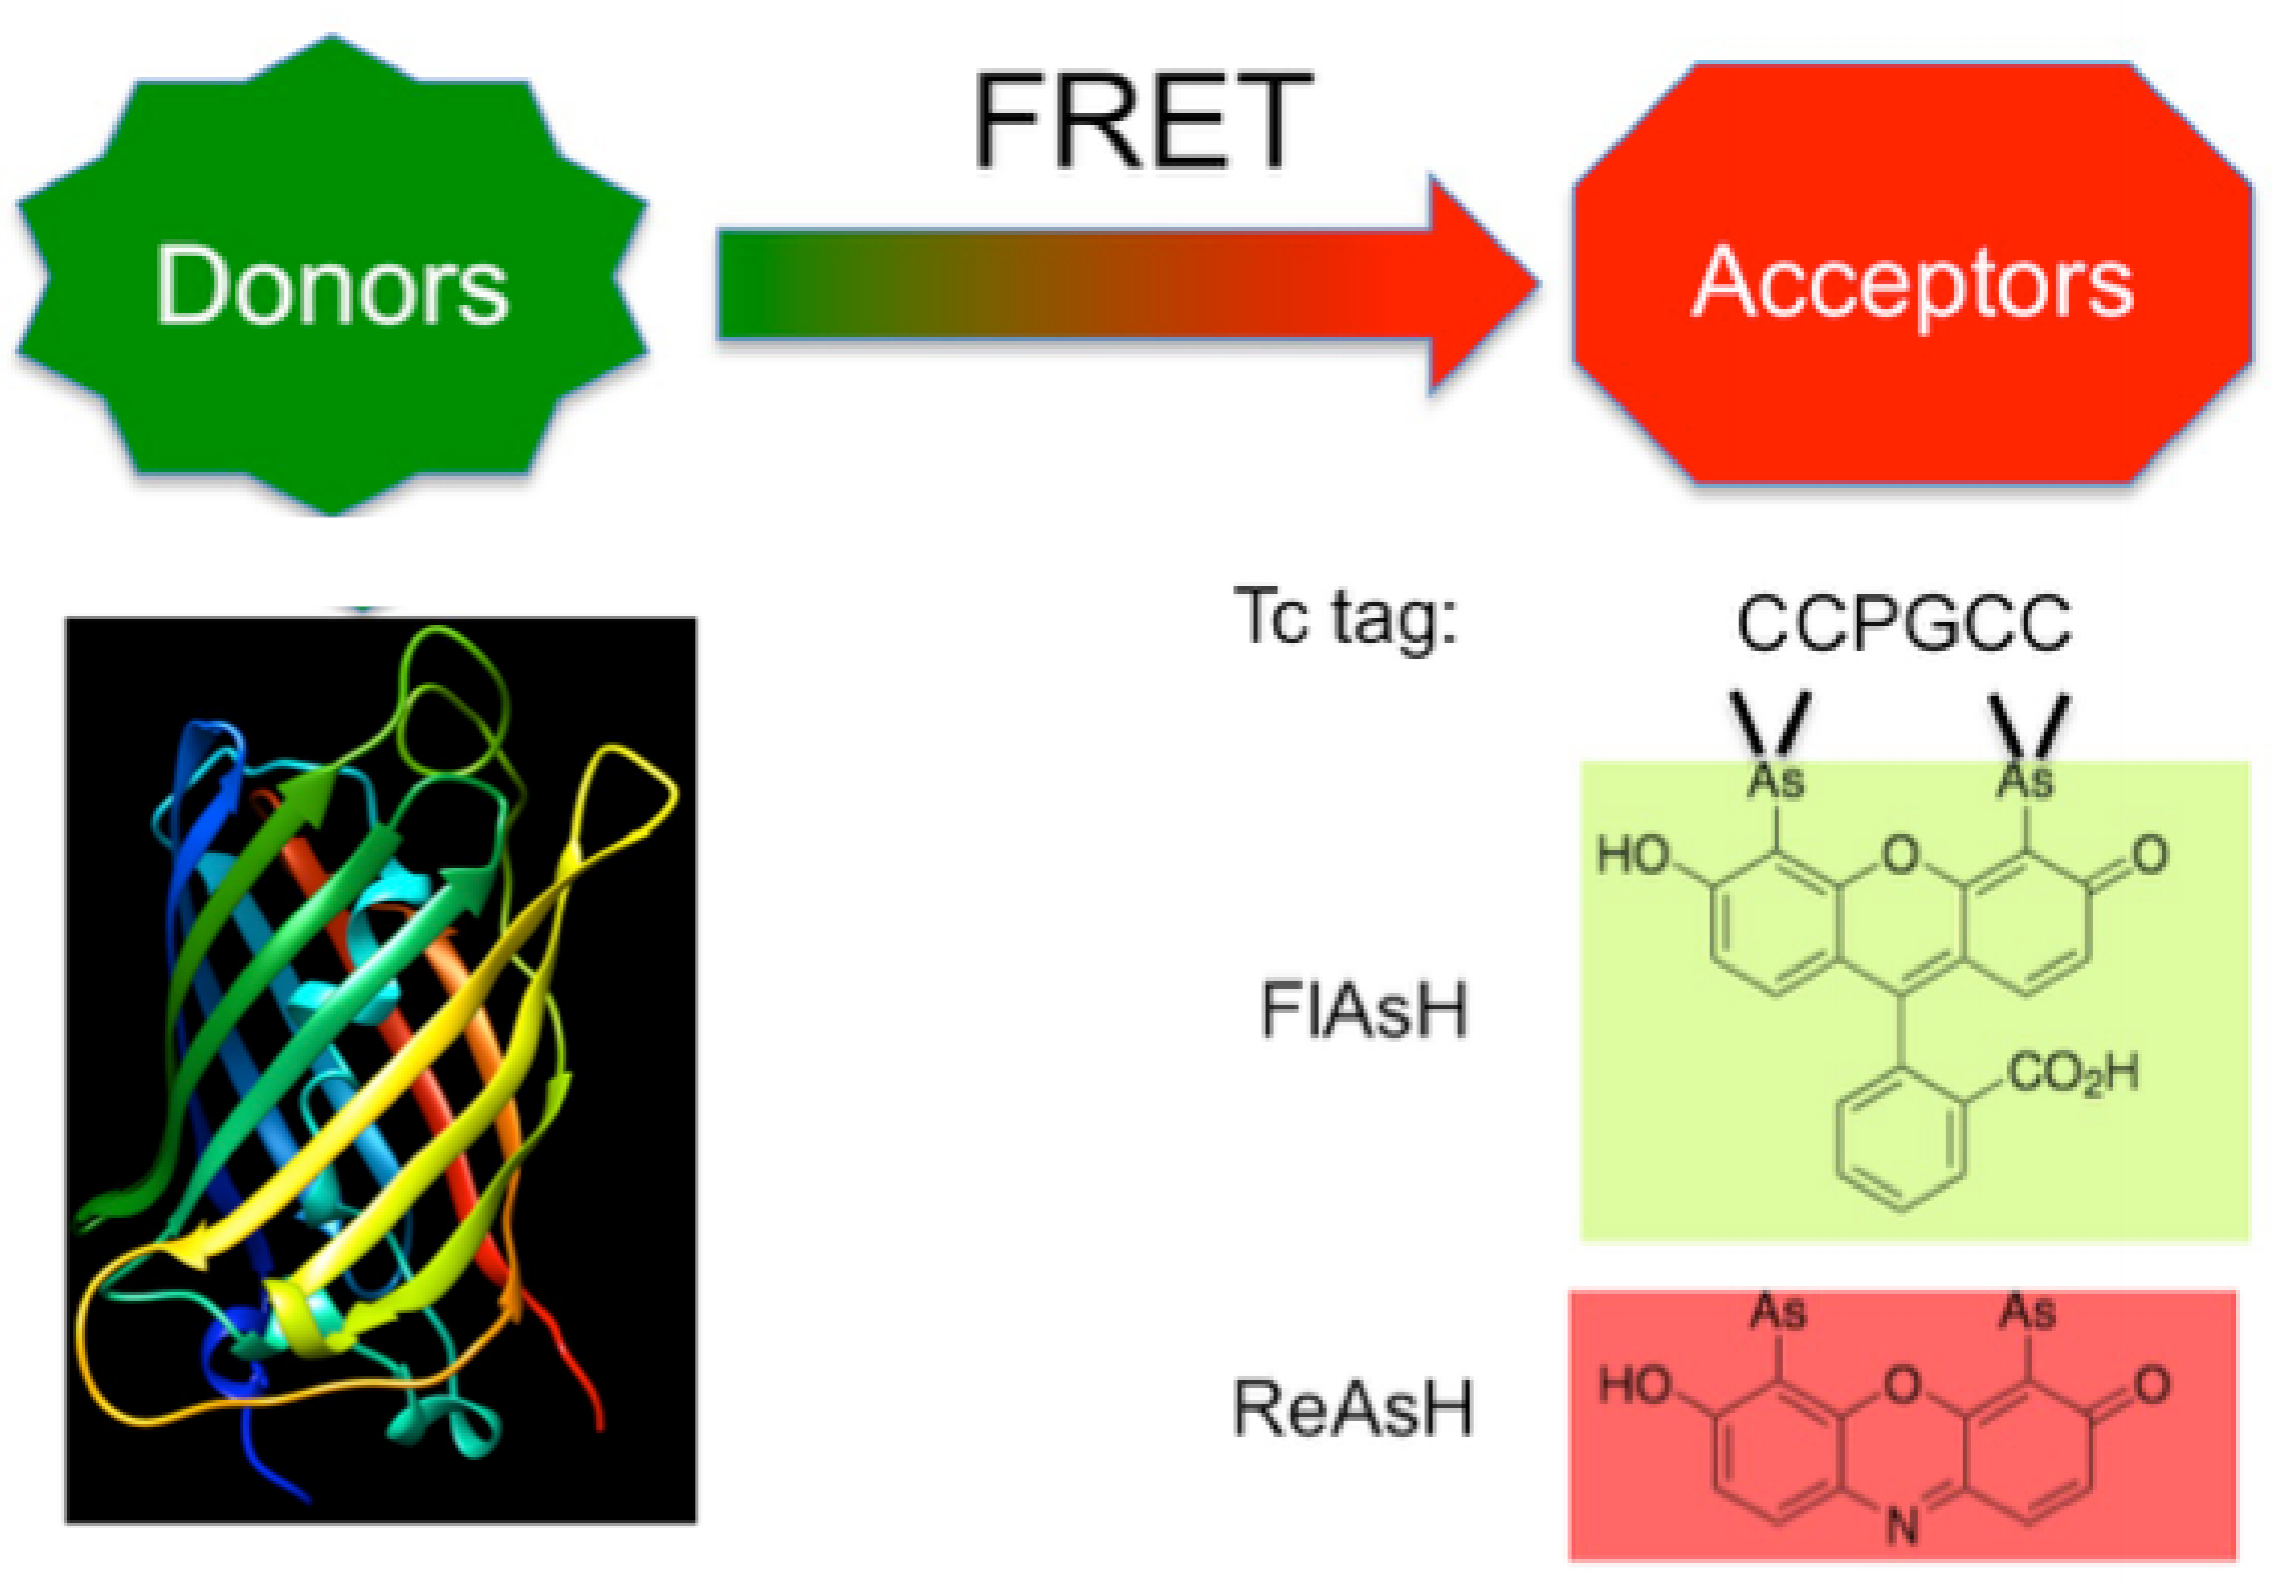 Examples of FRET Donors and Acceptors